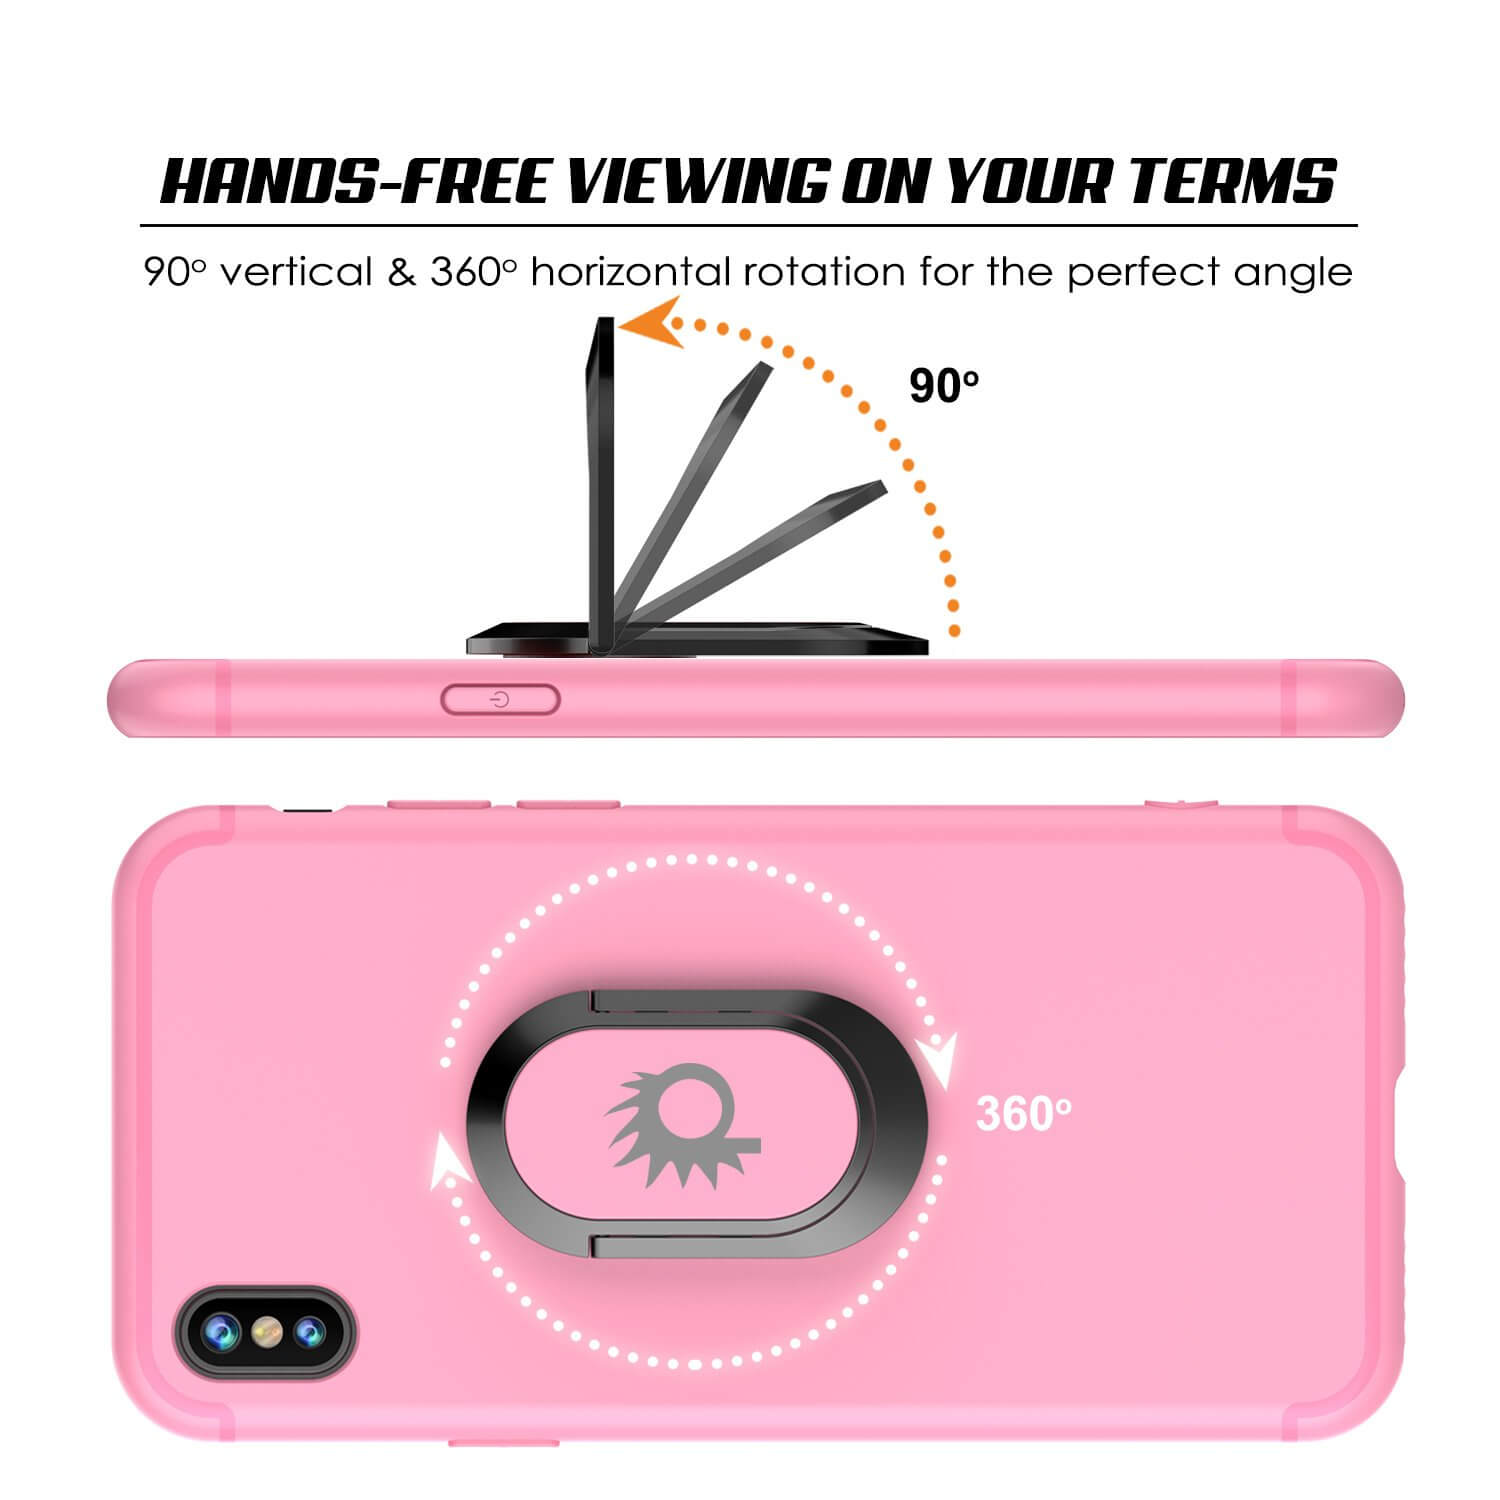 iPhone XS Case, Punkcase Magnetix Protective TPU Cover W/ Kickstand, Tempered Glass Screen Protector [Pink]